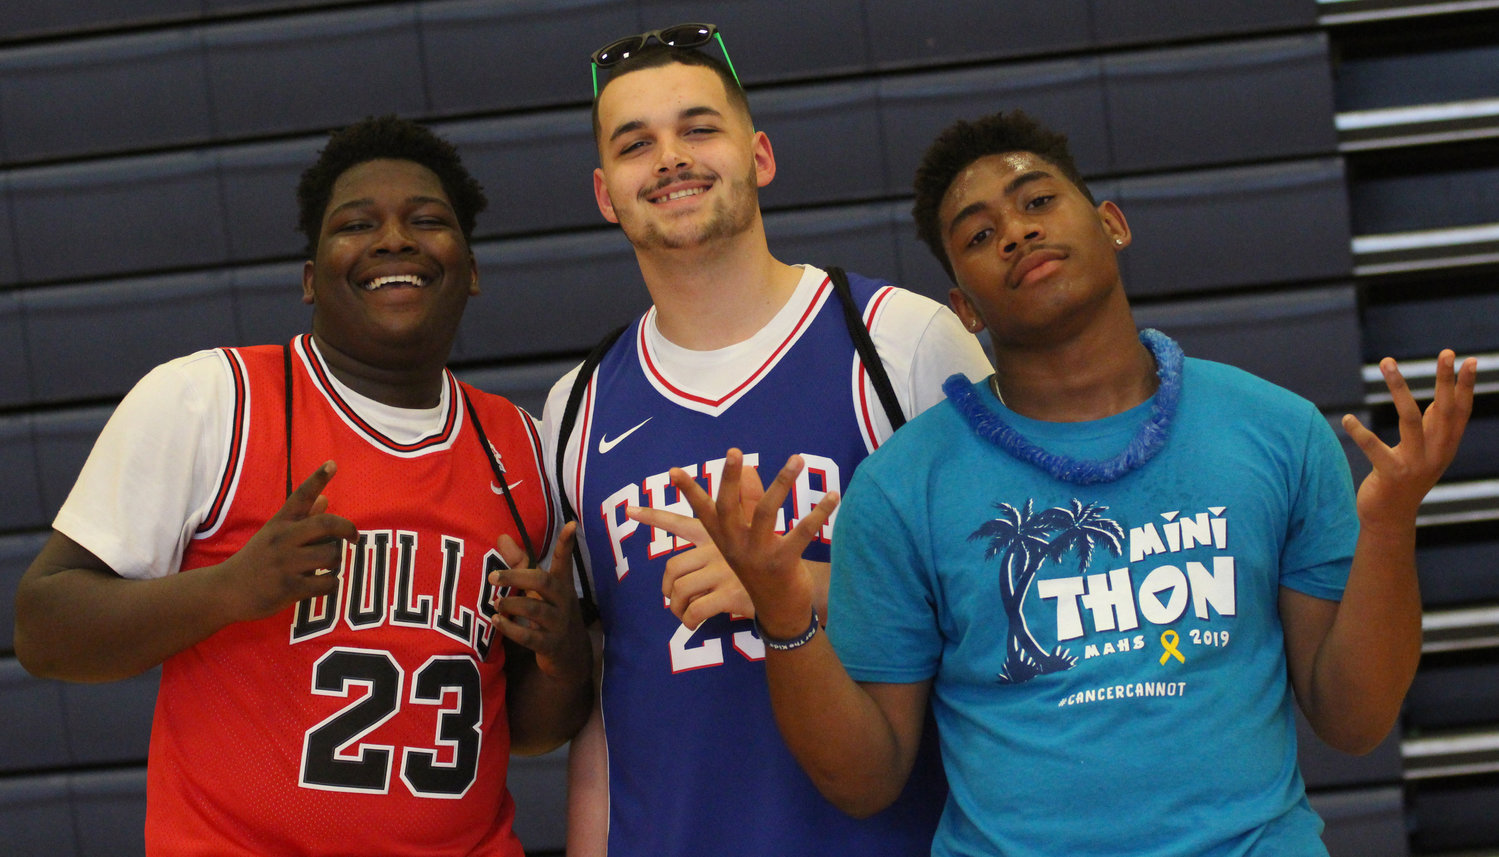 Gary Mensah, Brook Welsh and Arthur Dash enjoy Middletown Area High School's Mini-THON on May 3.